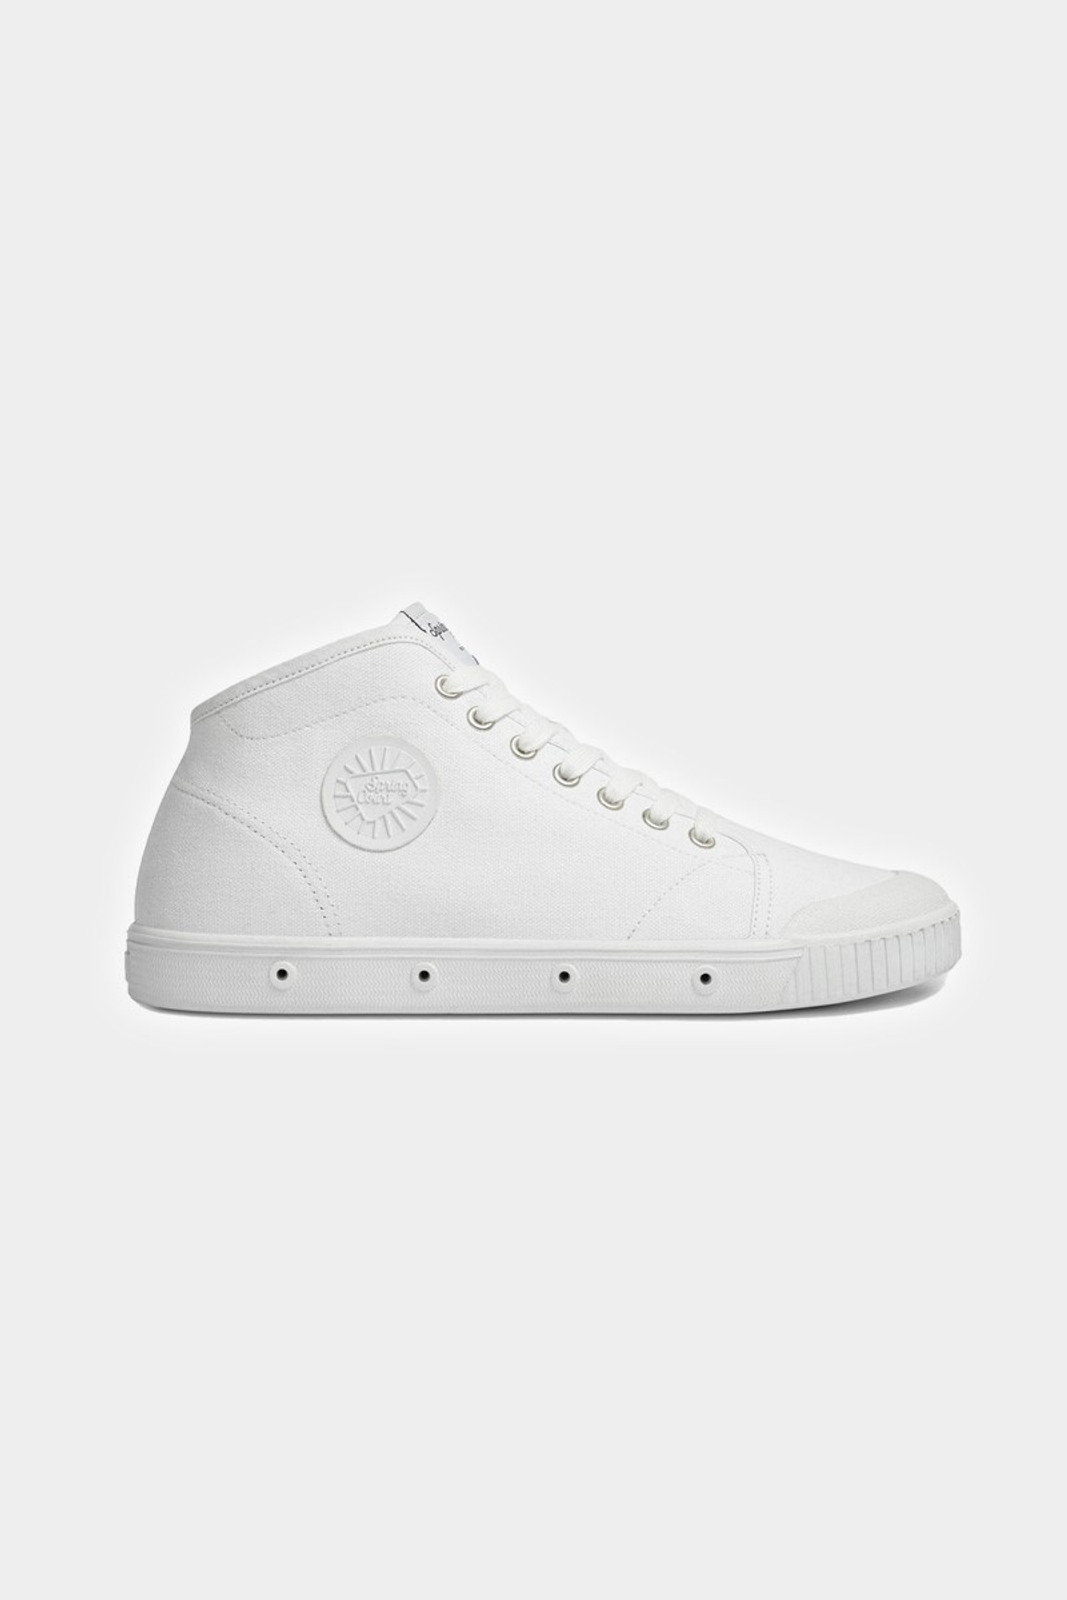 Elka Collective B2 WOMENS CANVAS White  0